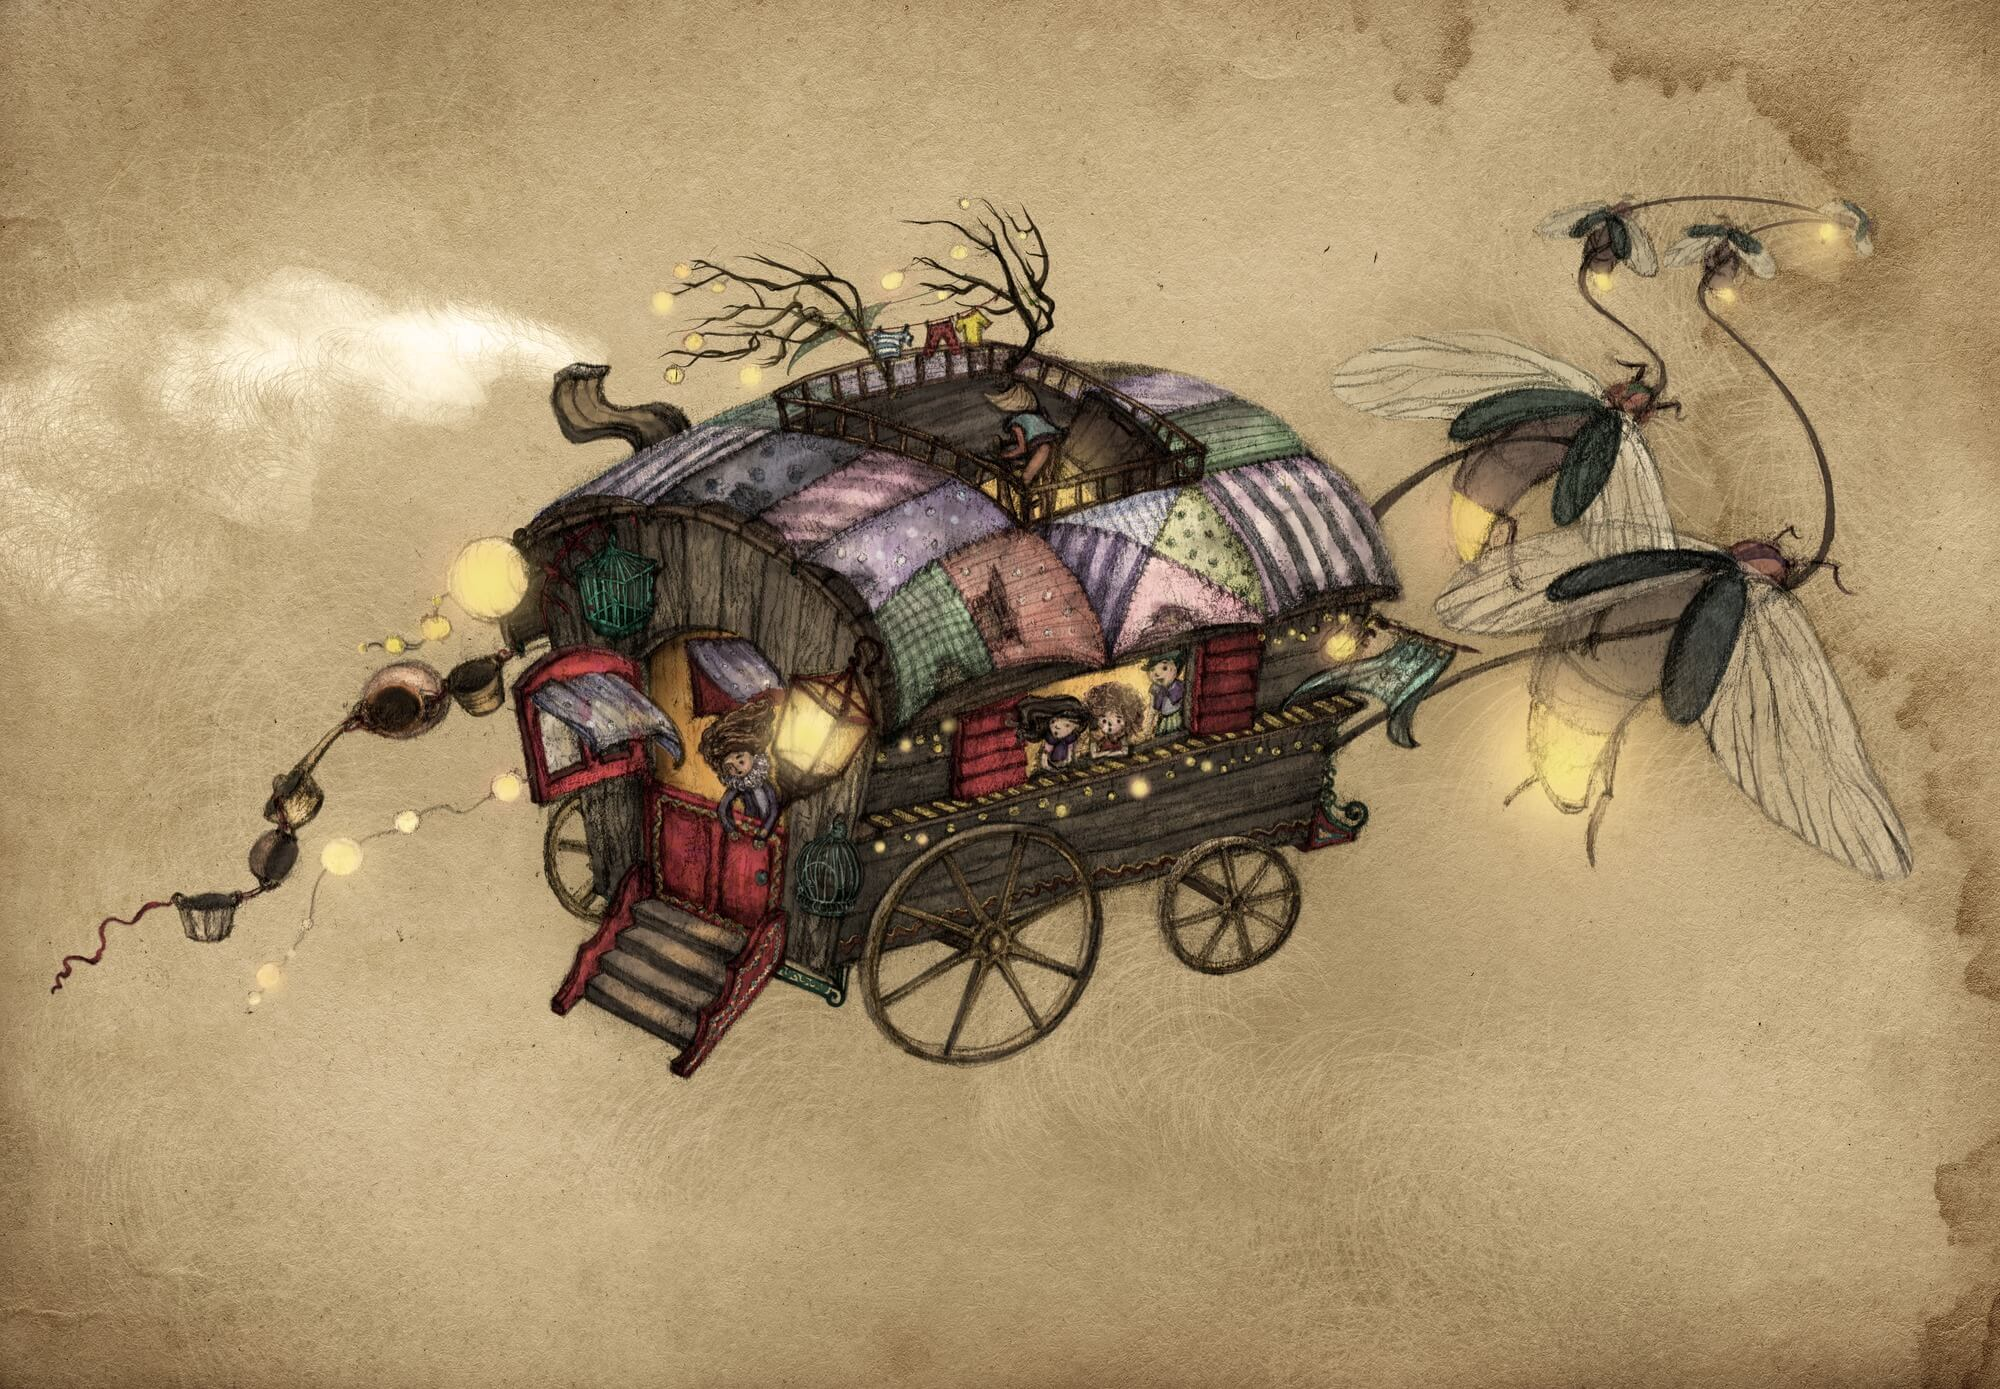 Gypsy Wagon Wall Mural & Gypsy Wagon Wallpaper | Wallsauce USA